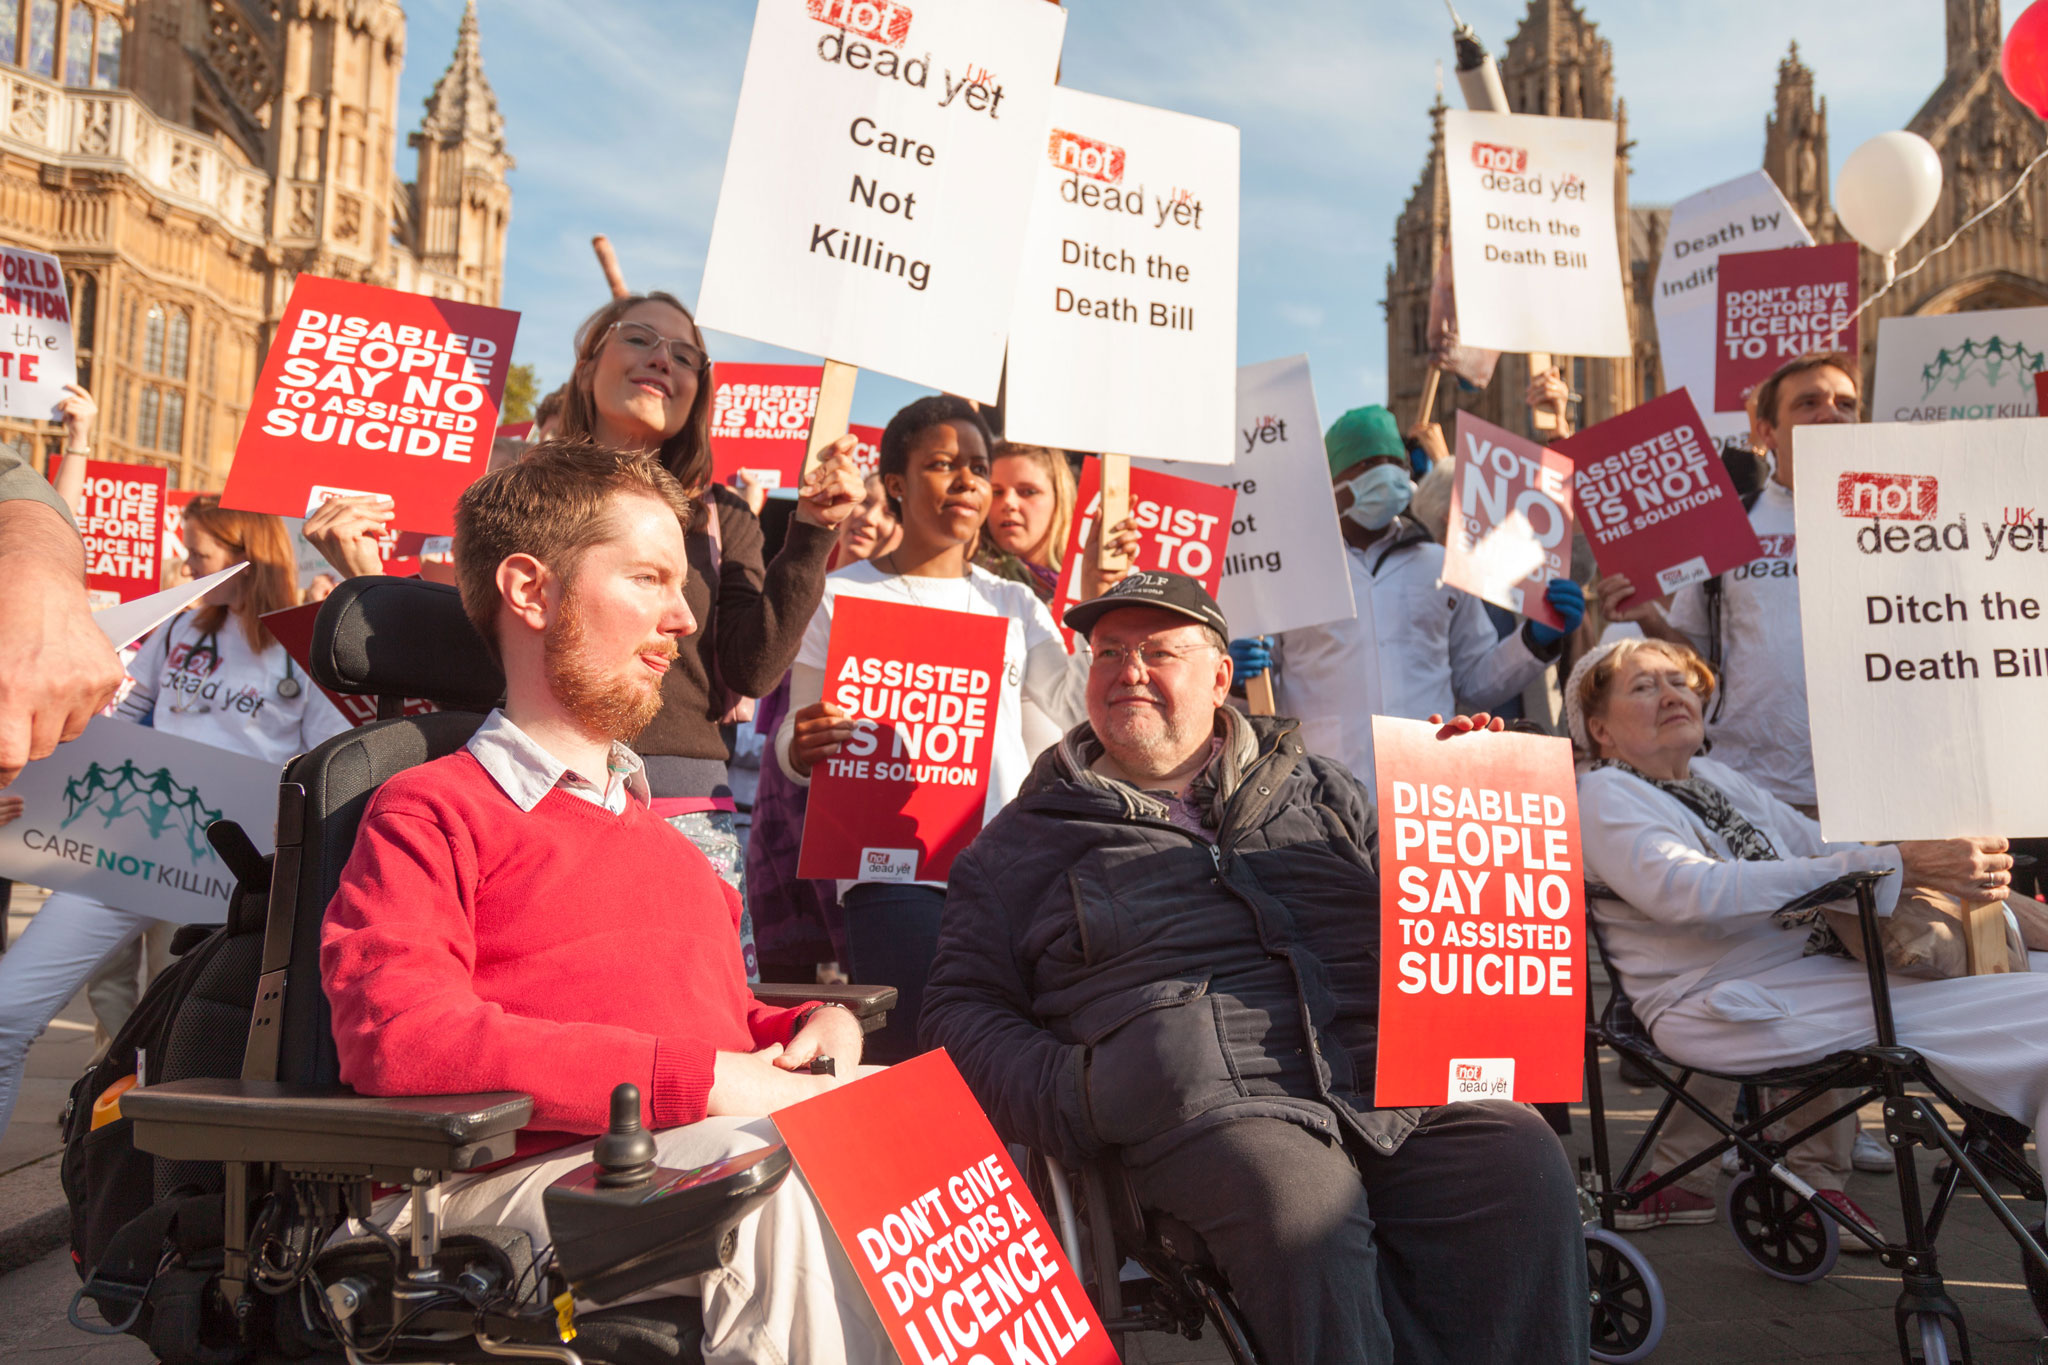 Disability rights advocates carry signs protesting doctor-assisted dying at a rally held by Not Dead Yet UK.